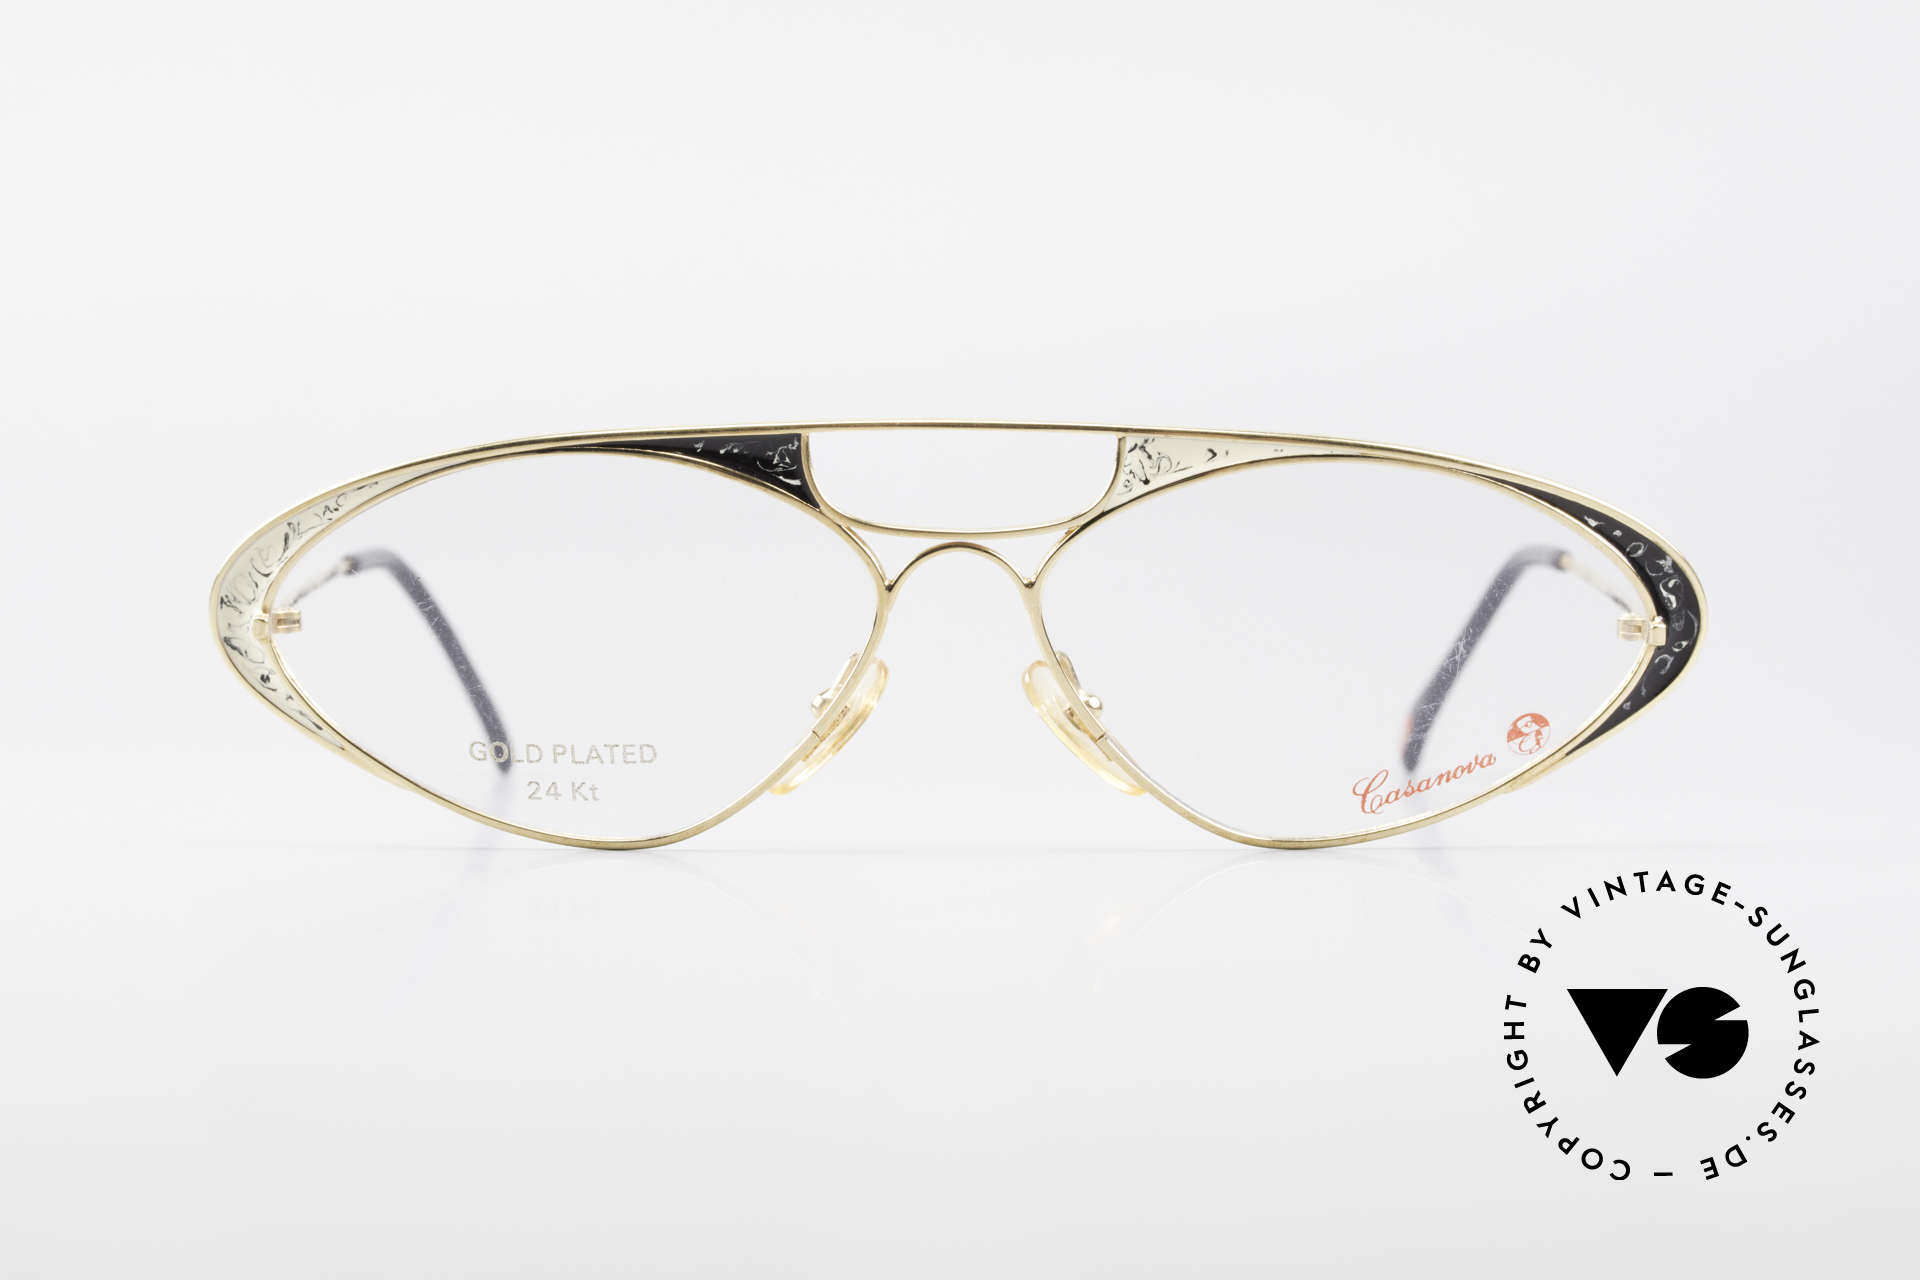 Casanova LC8 80's Vintage Ladies Eyeglasses, fantastic combination of color, shape & functionality, Made for Women